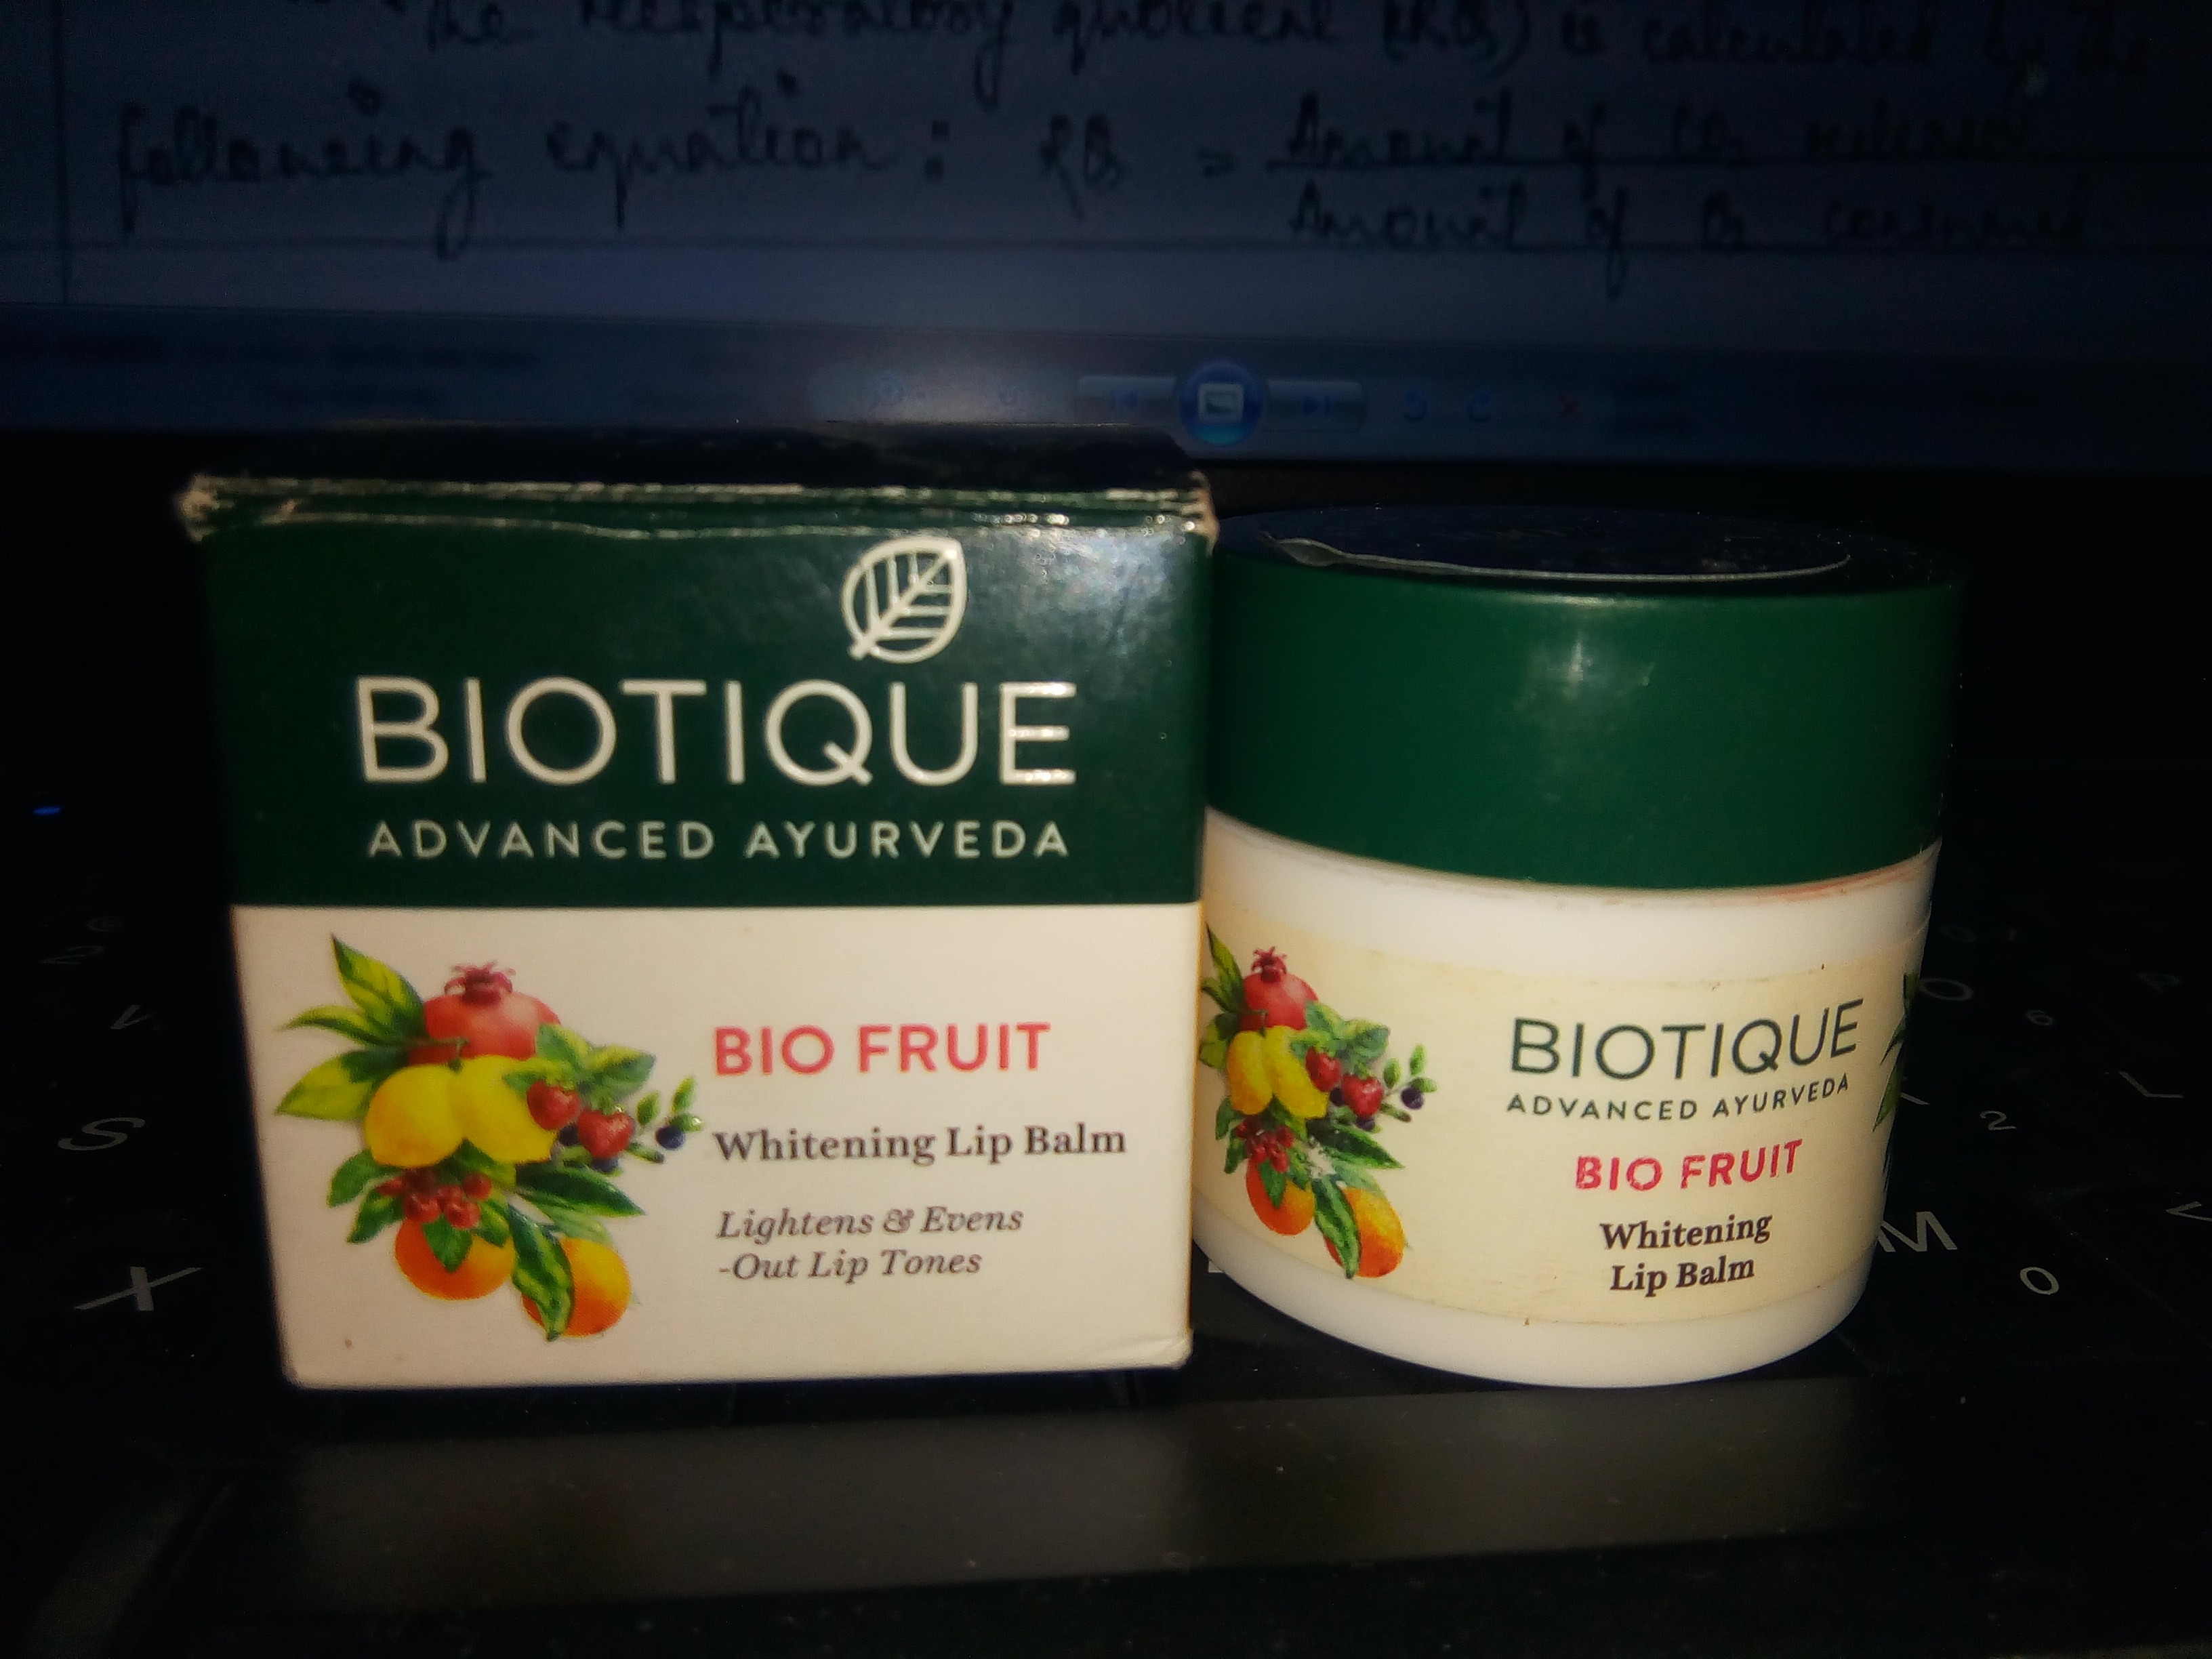 Biotique Bio Fruit Whitening Lip Balm-Fruity lip balm-By aneesha